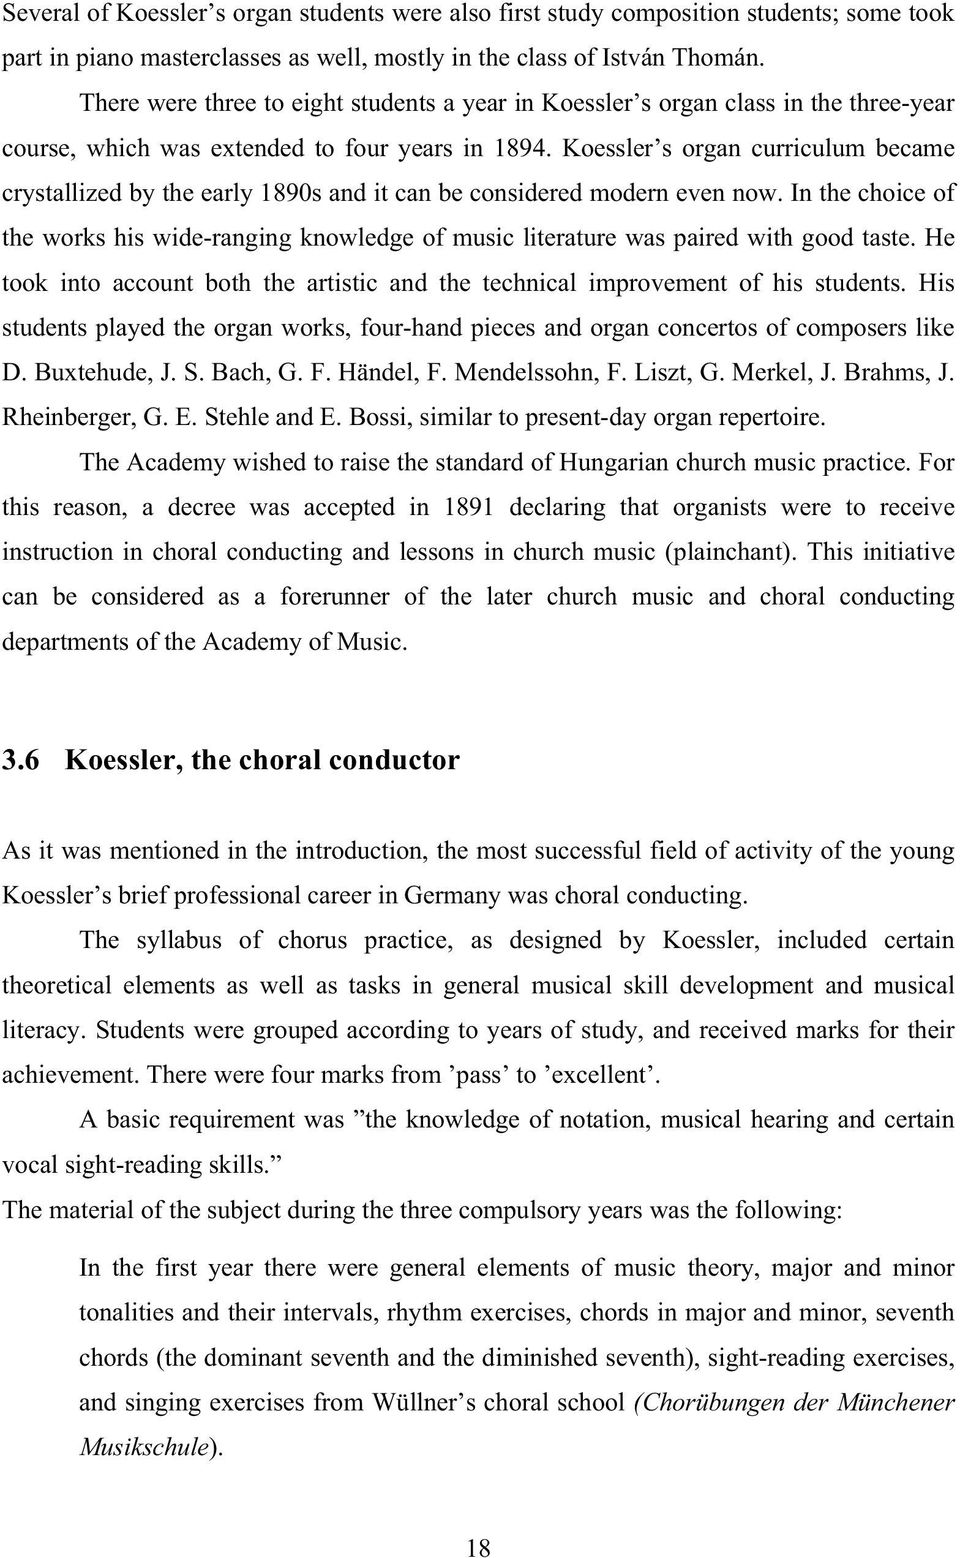 Koessler s organ curriculum became crystallized by the early 1890s and it can be considered modern even now.